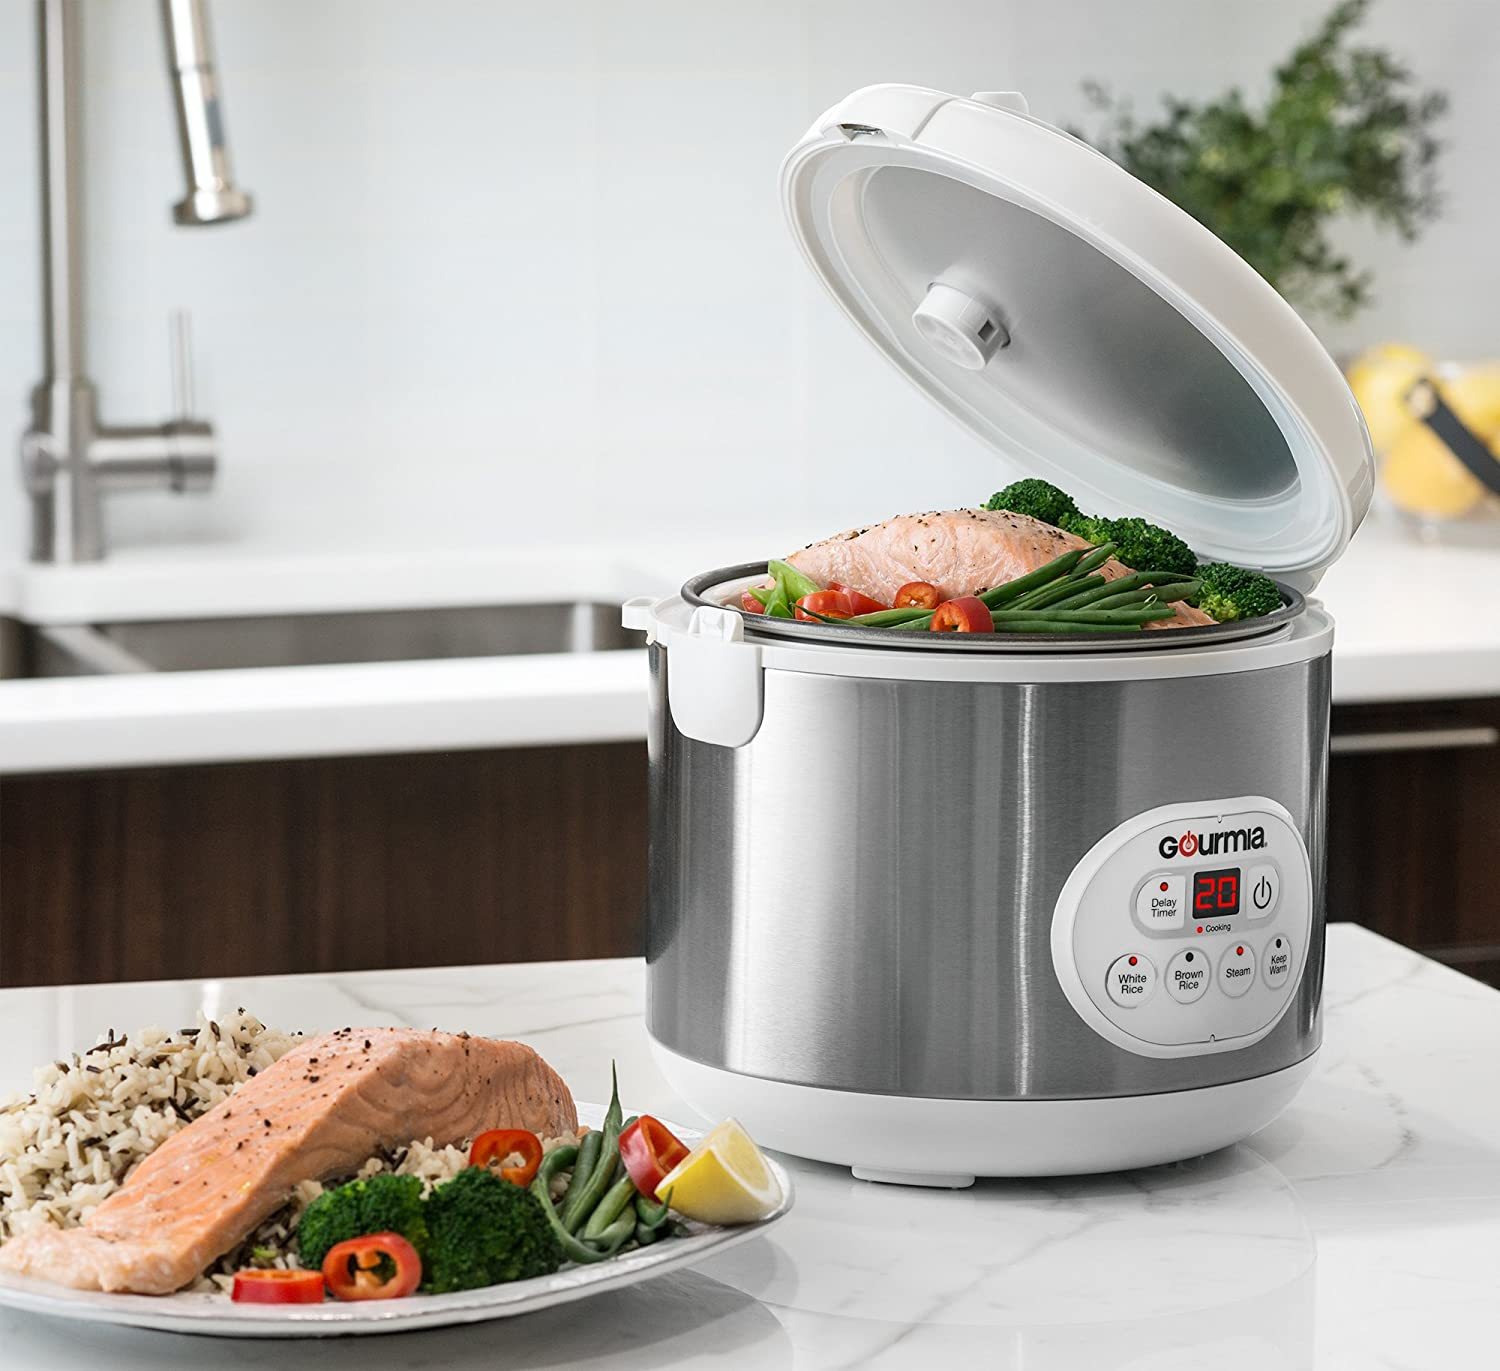 Amazon.com: Gourmia GRC770 12 Cup (Cooked) Rice Cooker and Steamer ...